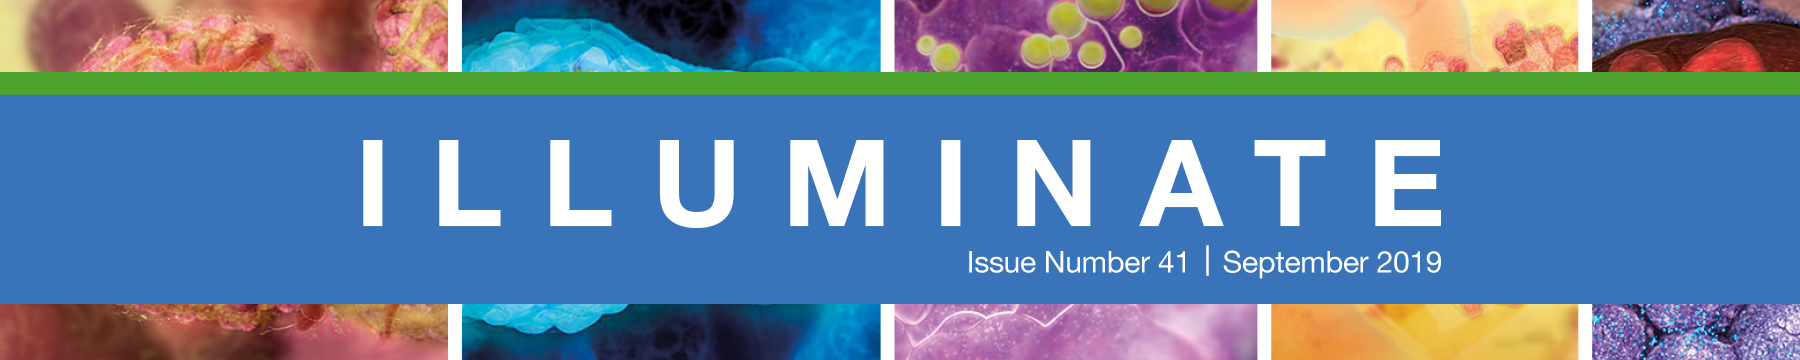 Illuminate newsletter index page, September 2019